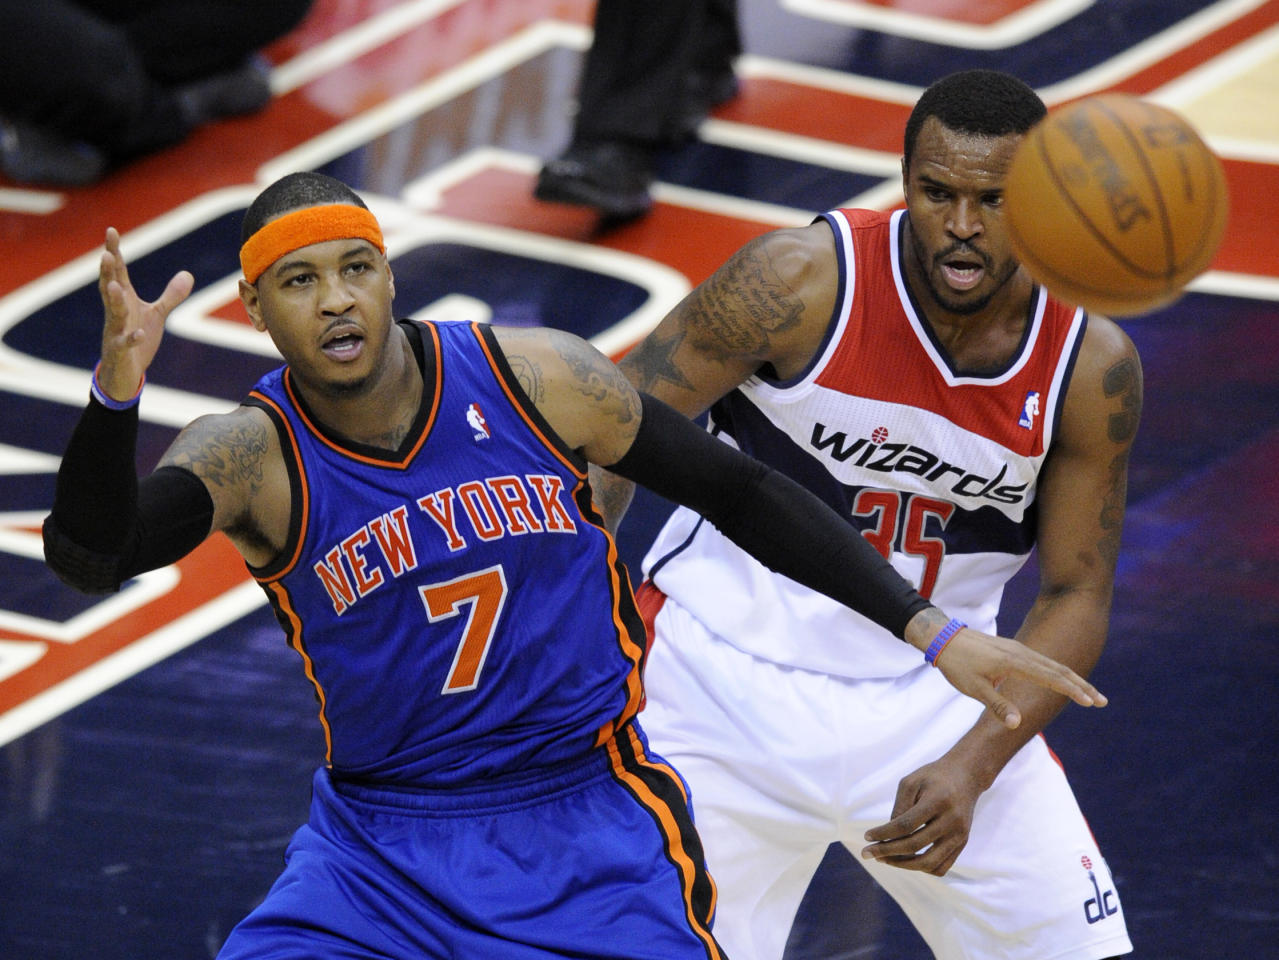 New York Knicks forward Carmelo Anthony (7) looks for the ball against Washington Wizards forward Trevor Booker (35) during the second half of an NBA basketball game on Friday, Jan. 6, 2012, in Washington. The Knicks won 99-96. (AP Photo/Nick Wass)